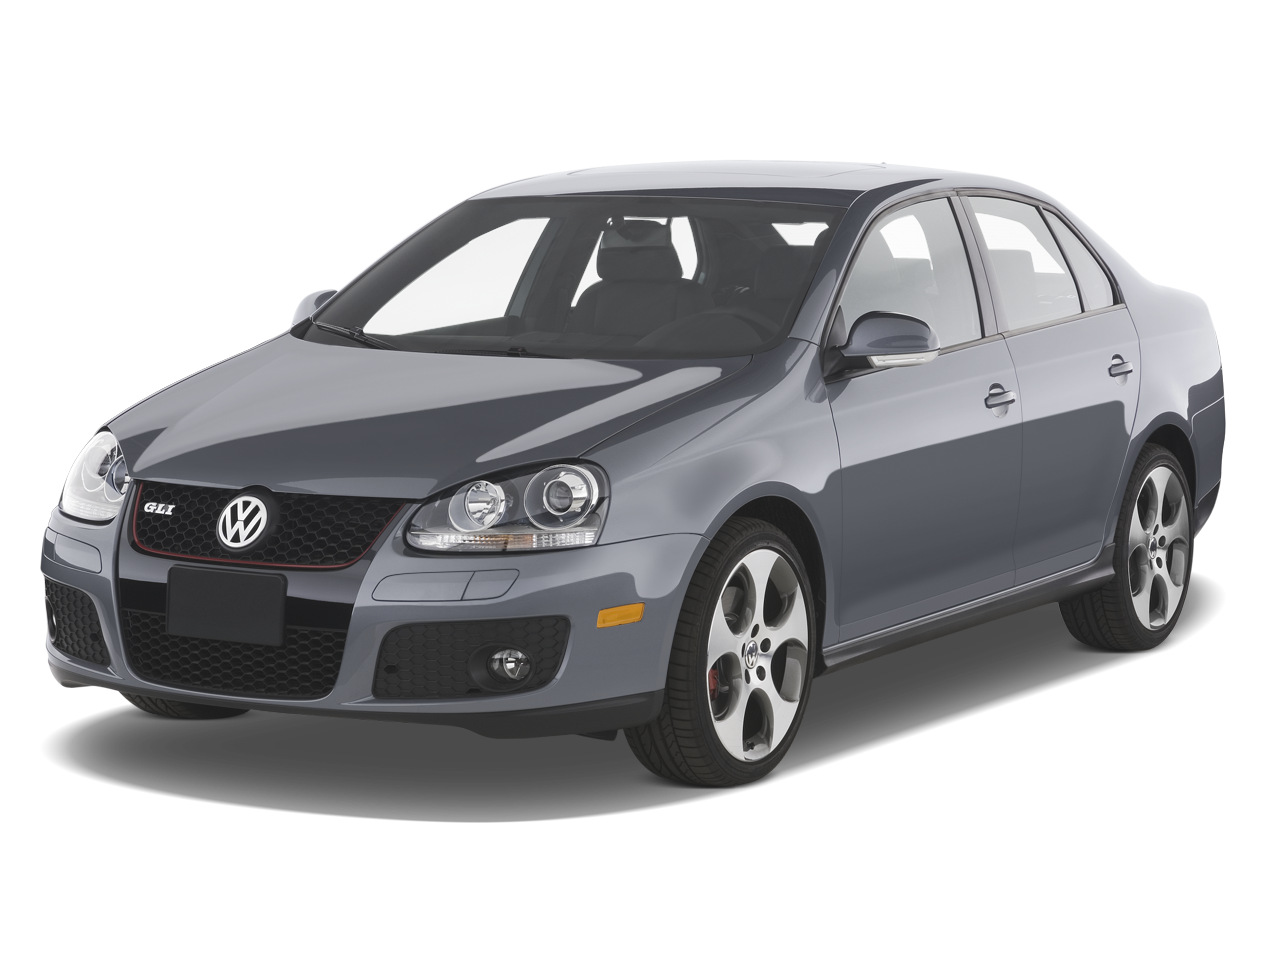 2008 volkswagen jetta 2 5 se volkswagen compact sedan review automobile magazine. Black Bedroom Furniture Sets. Home Design Ideas